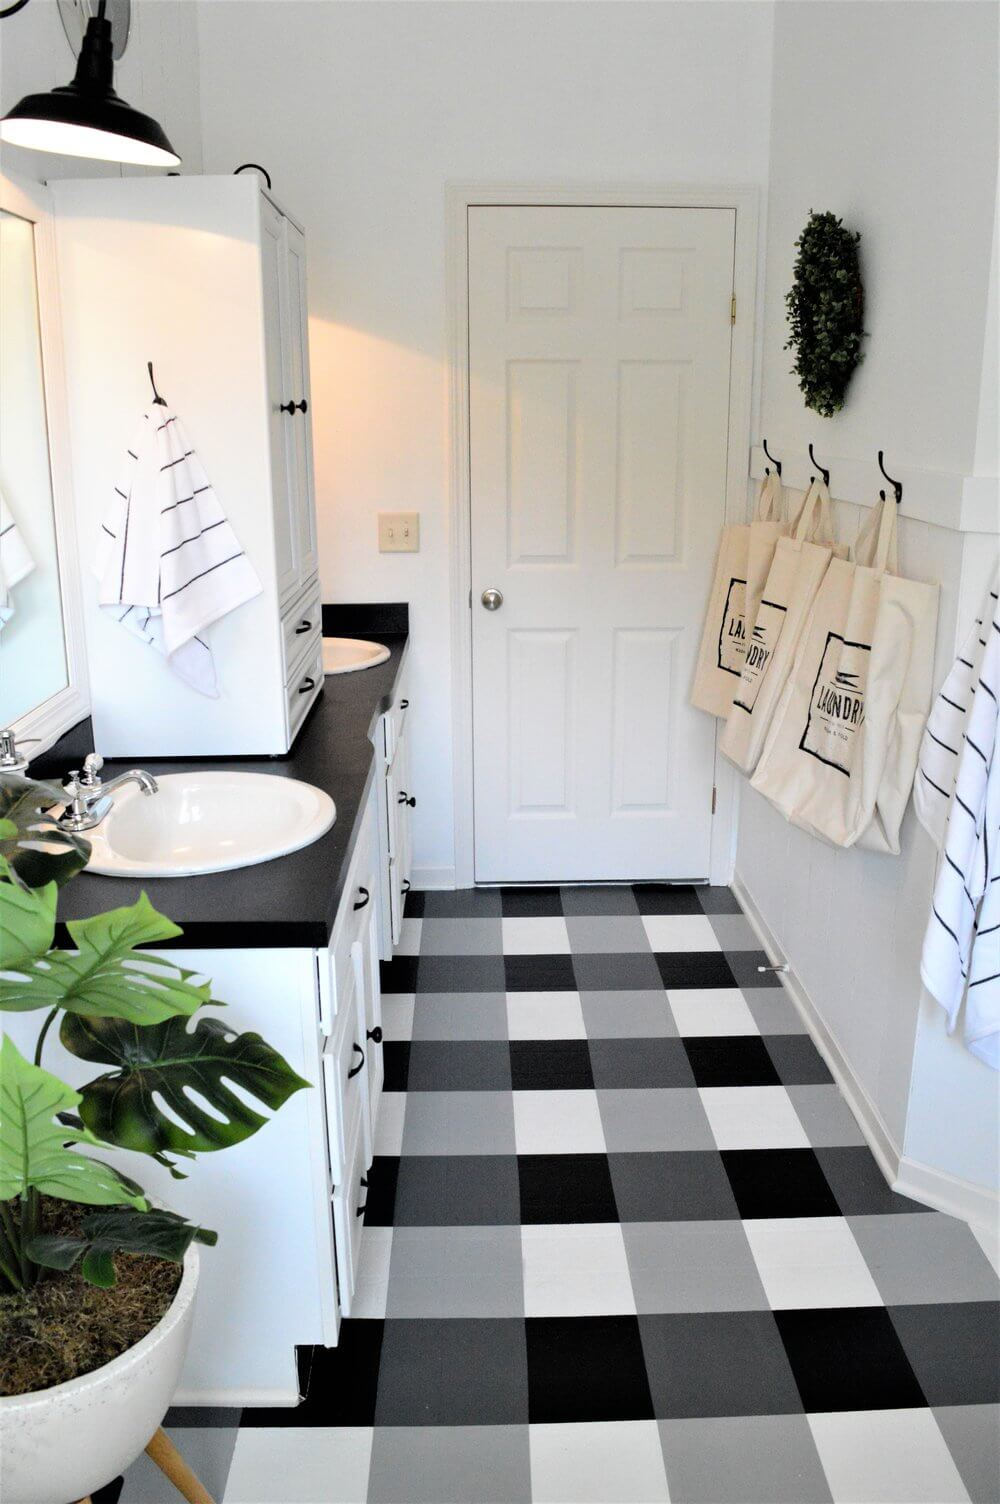 Black, White, and Plaid All Over the Bathroom Floor